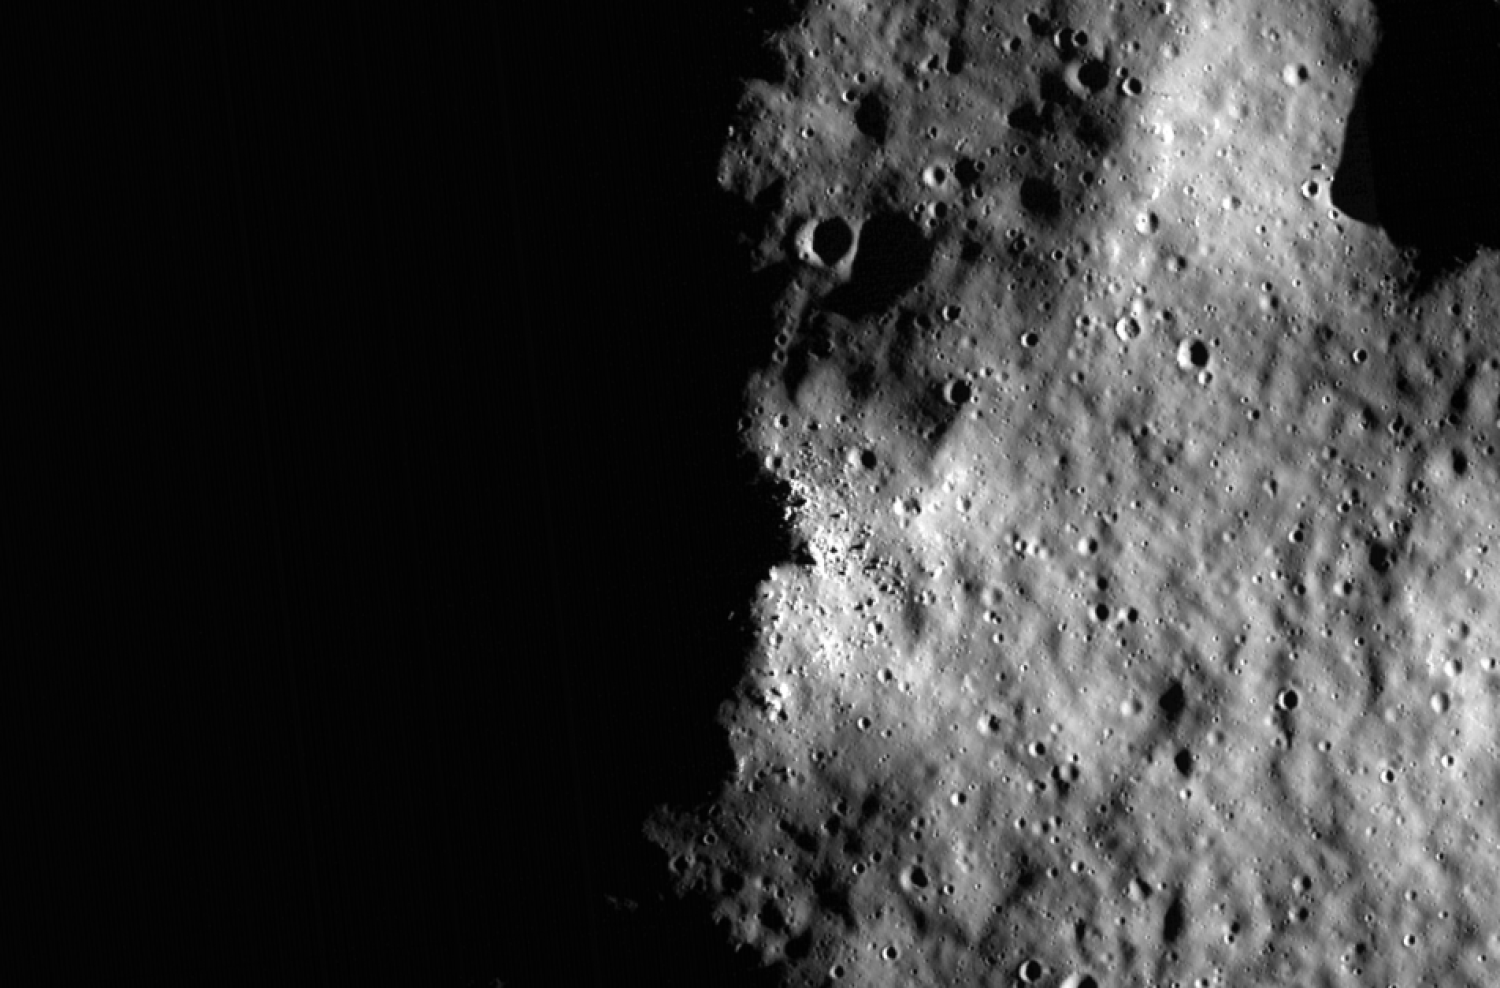 Shadows on the moon's surface